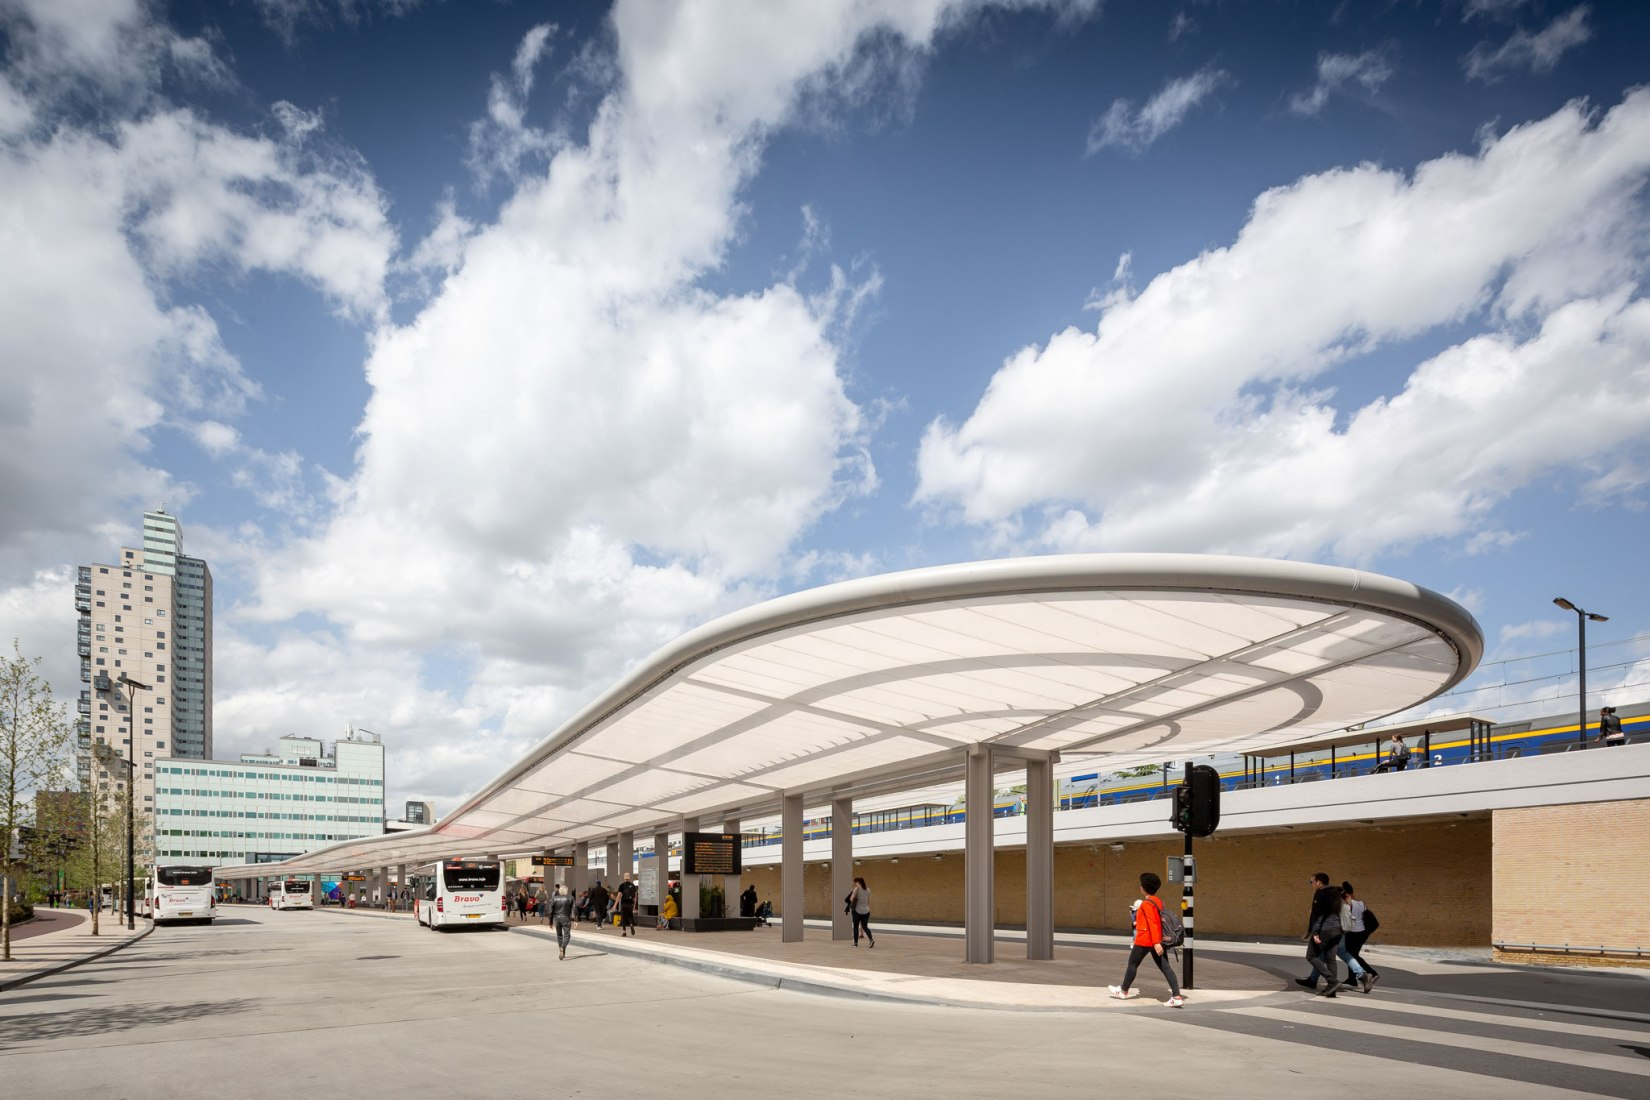 Self-sufficient bus station by Cepezed architects. Photograph by cepezed | Lucas van der Wee. Image courtesy of V2com.